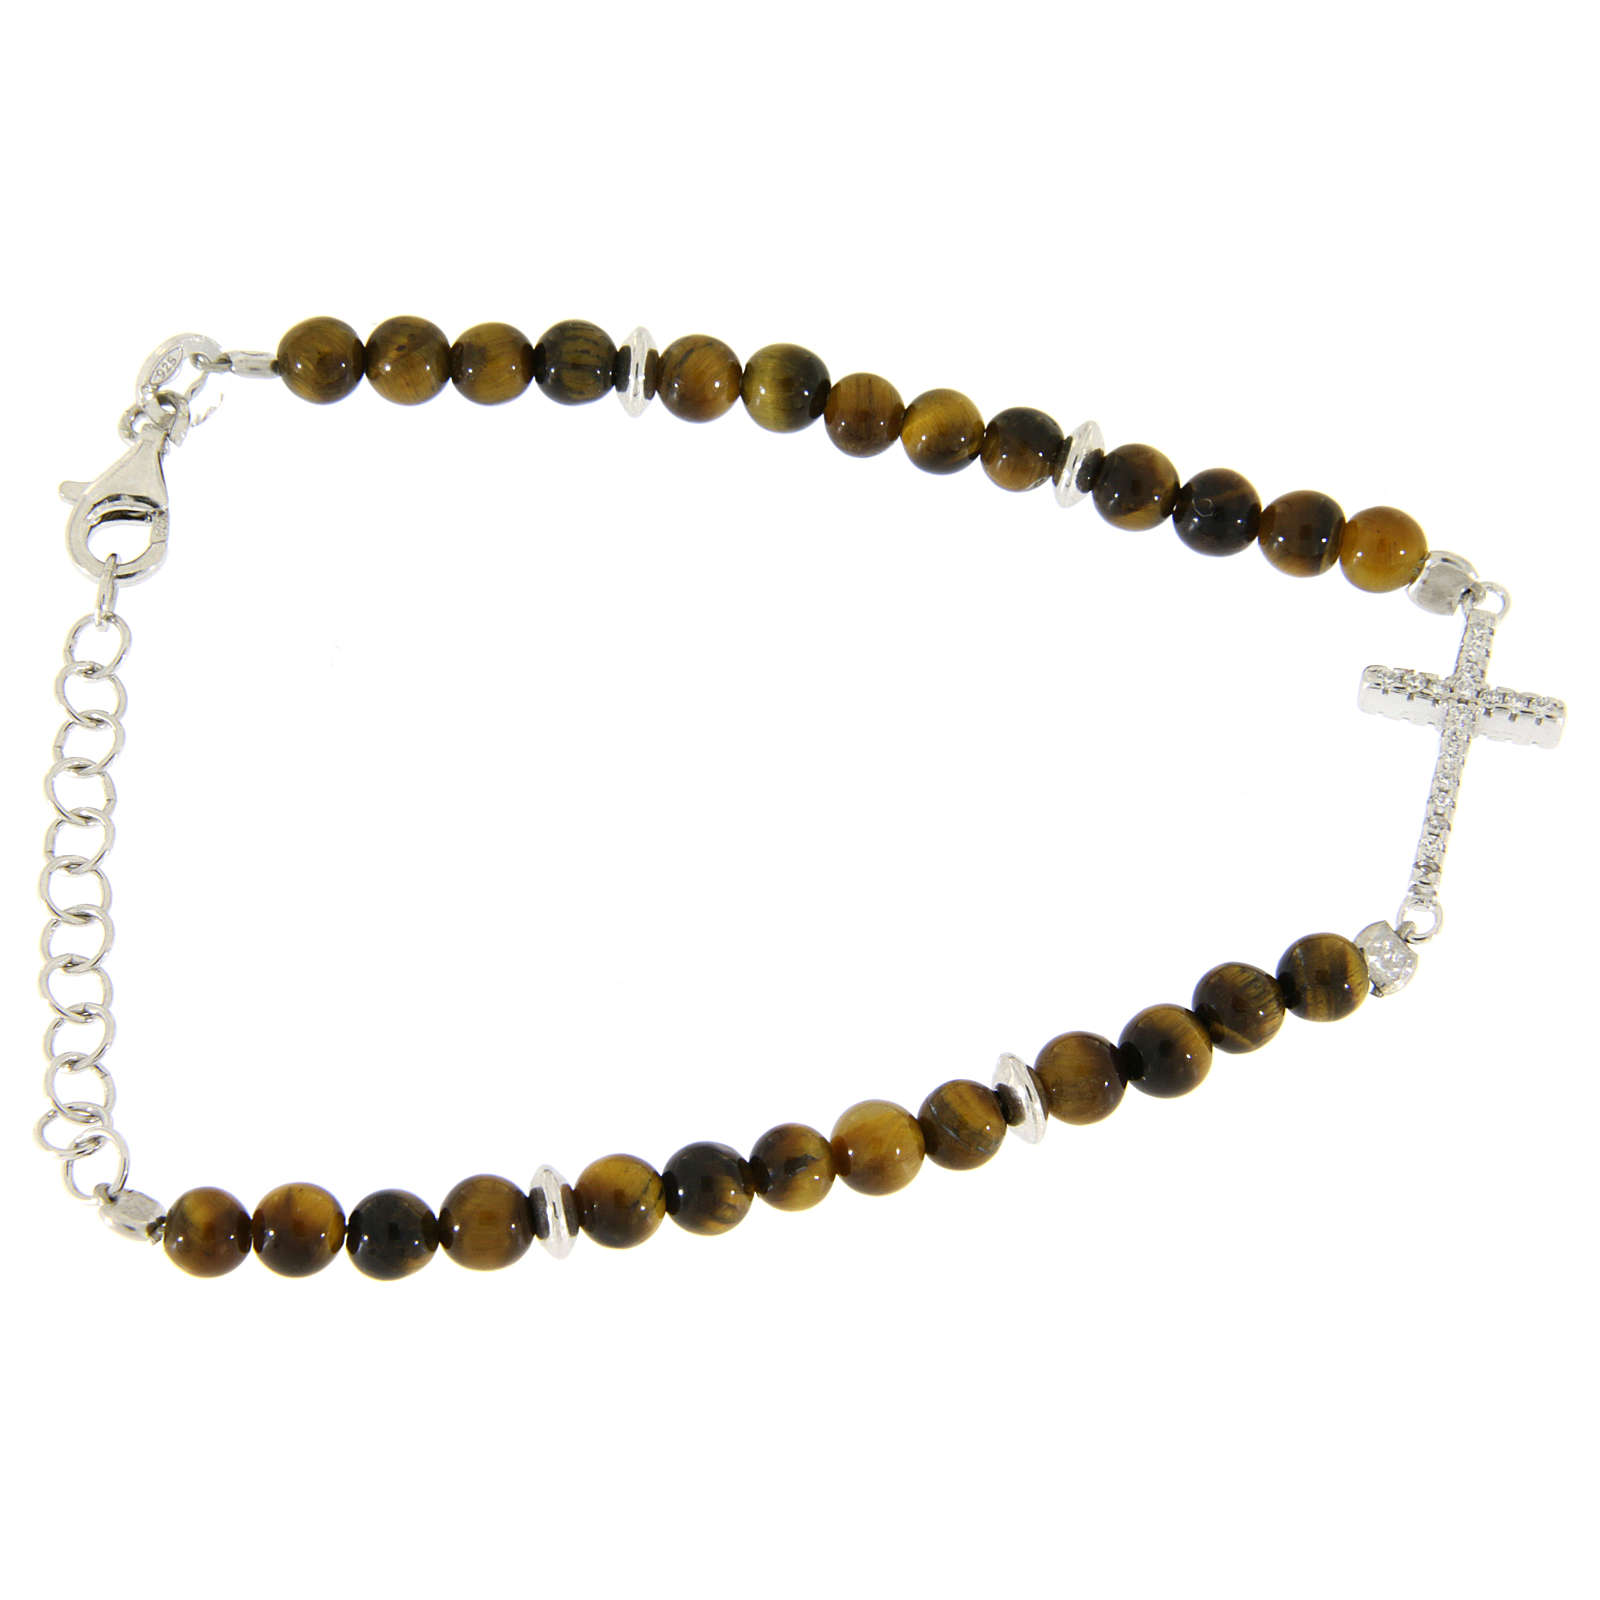 Bracelet with tiger's eye beads, white zirconate cross in 925 sterling silver 4